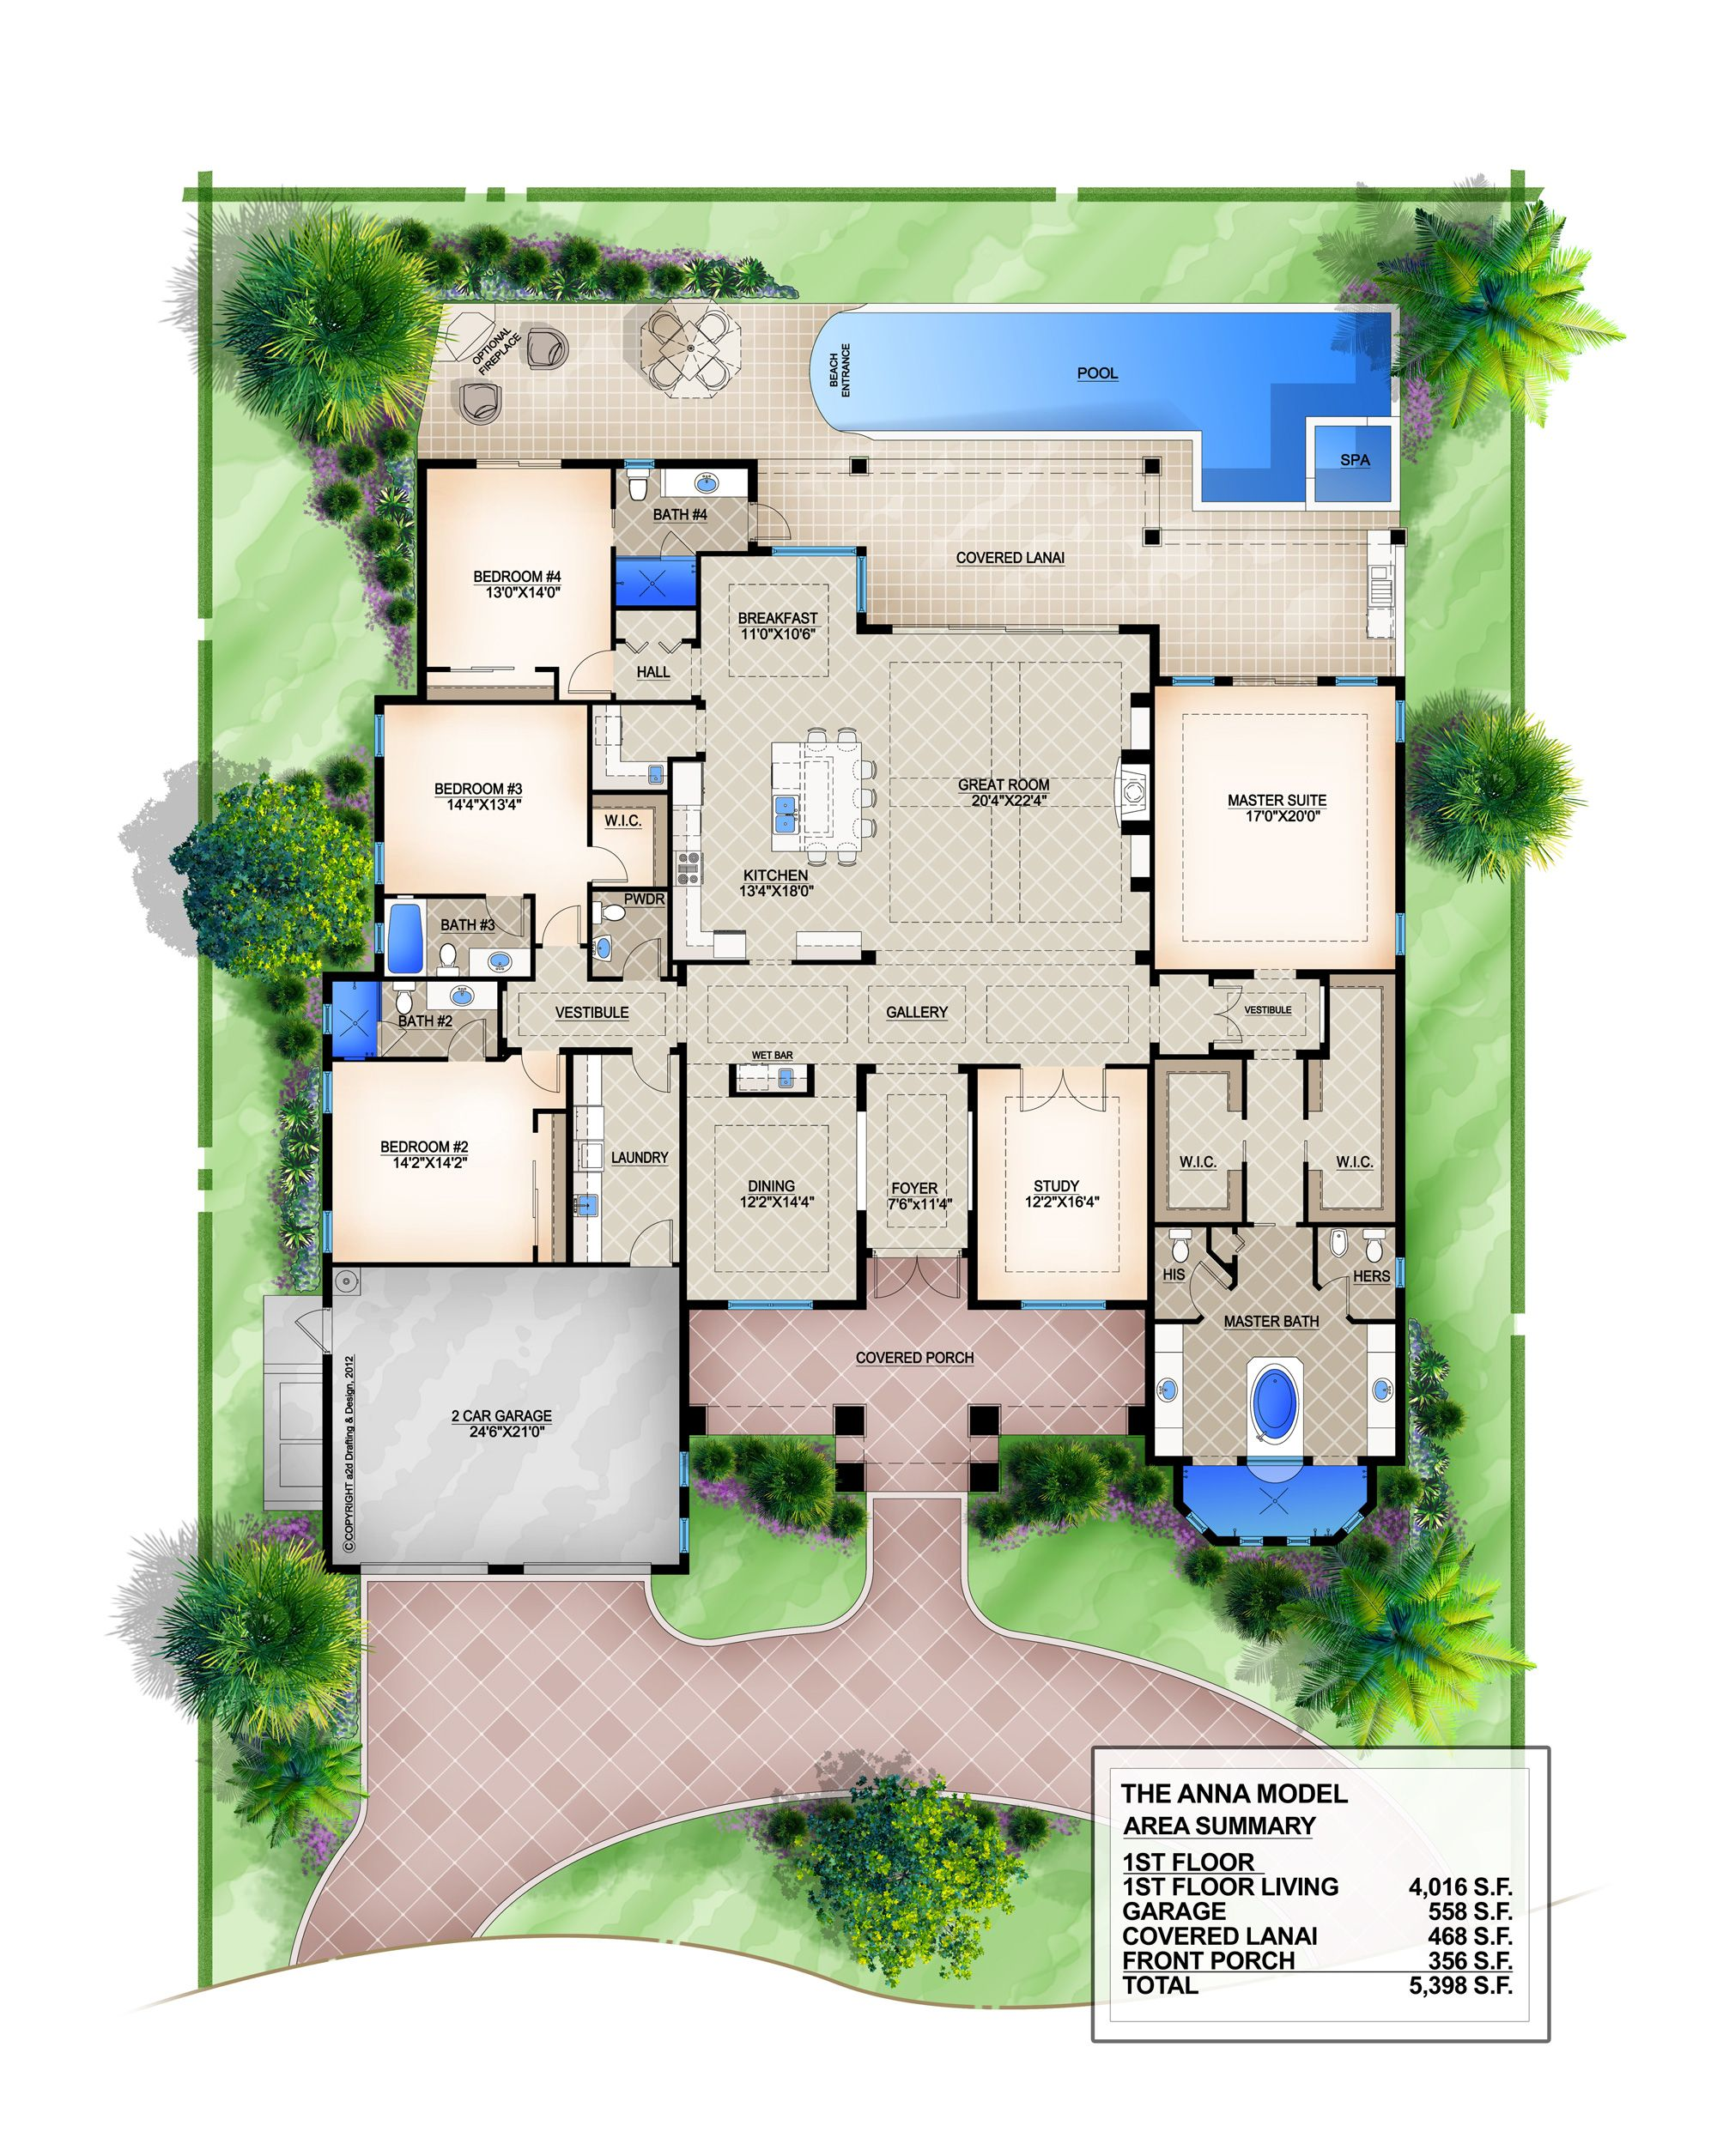 Anna coastal floor plan 4 bedroom 4 1 2 bath 1 story 2 for 6 car garage house plans